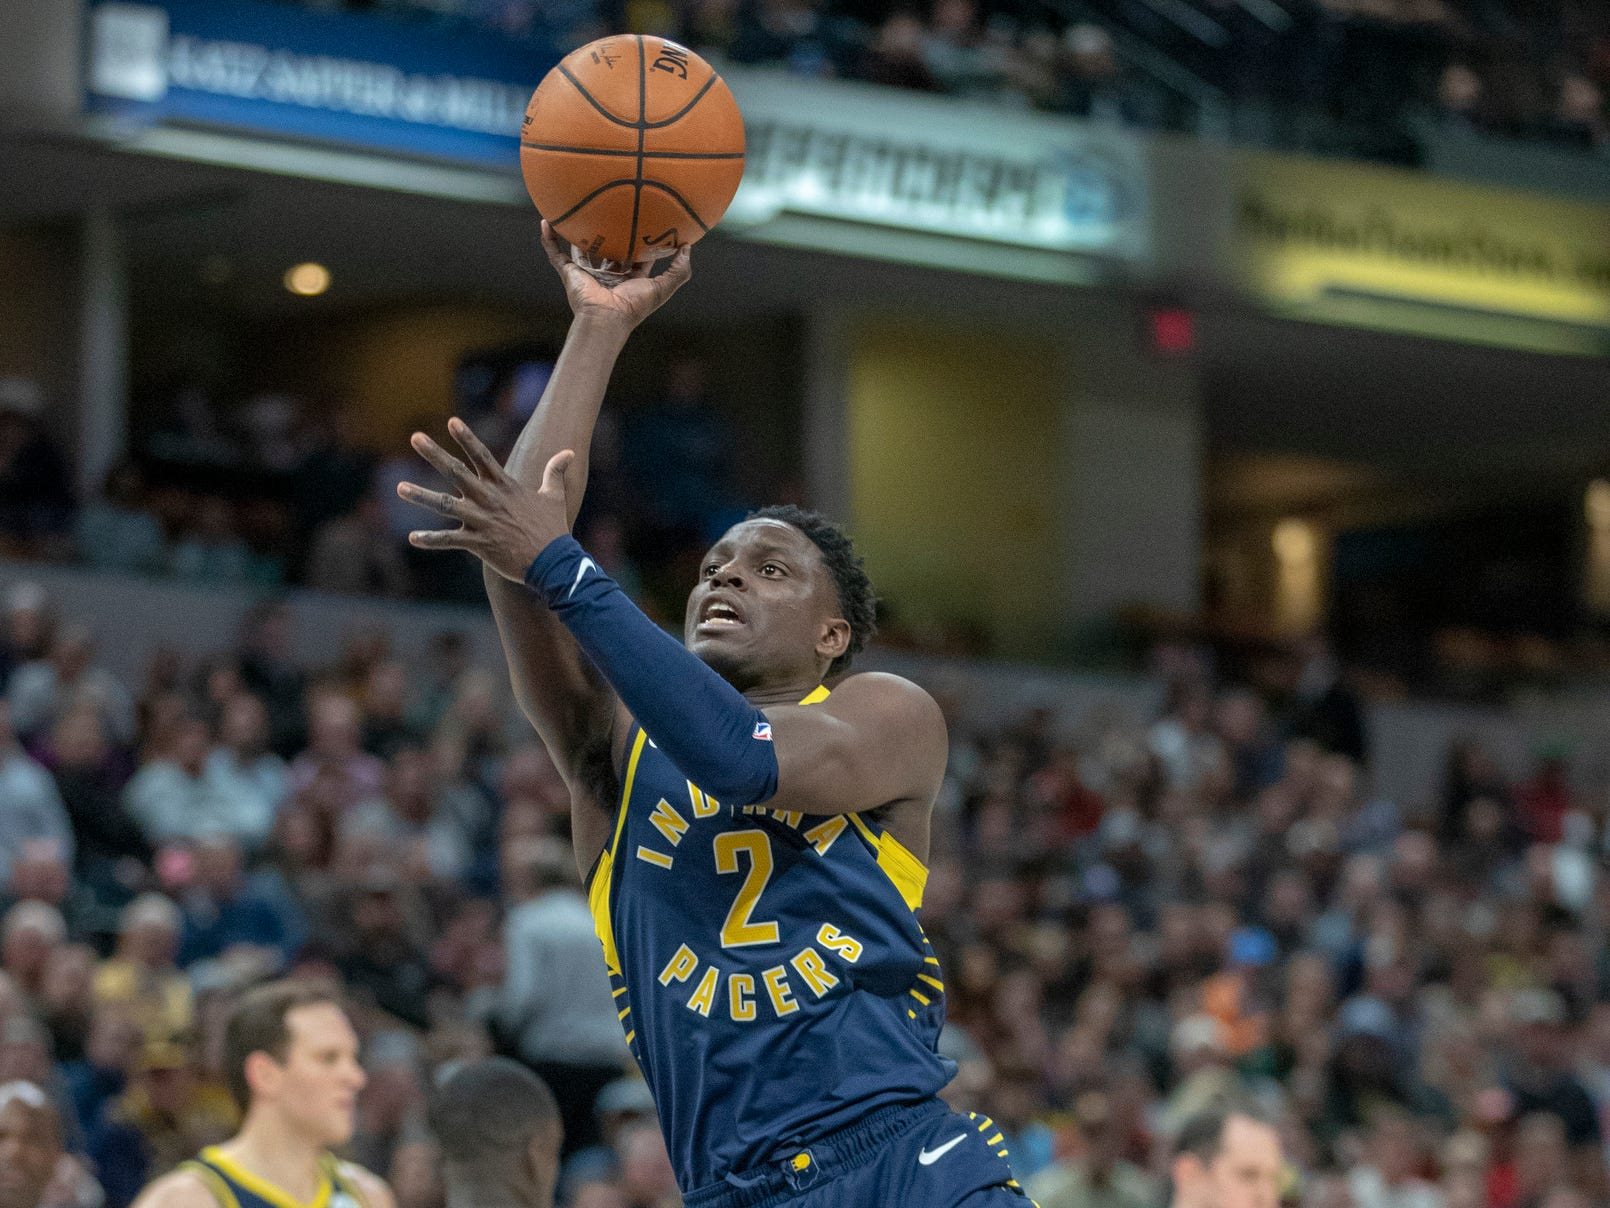 Darren Collison of the Indiana Pacers puts up a shot against Milwaukee, Bankers Life Fieldhouse, Indianapolis, Wednesday, Feb. 13, 2019. Milwaukee won 106-97.